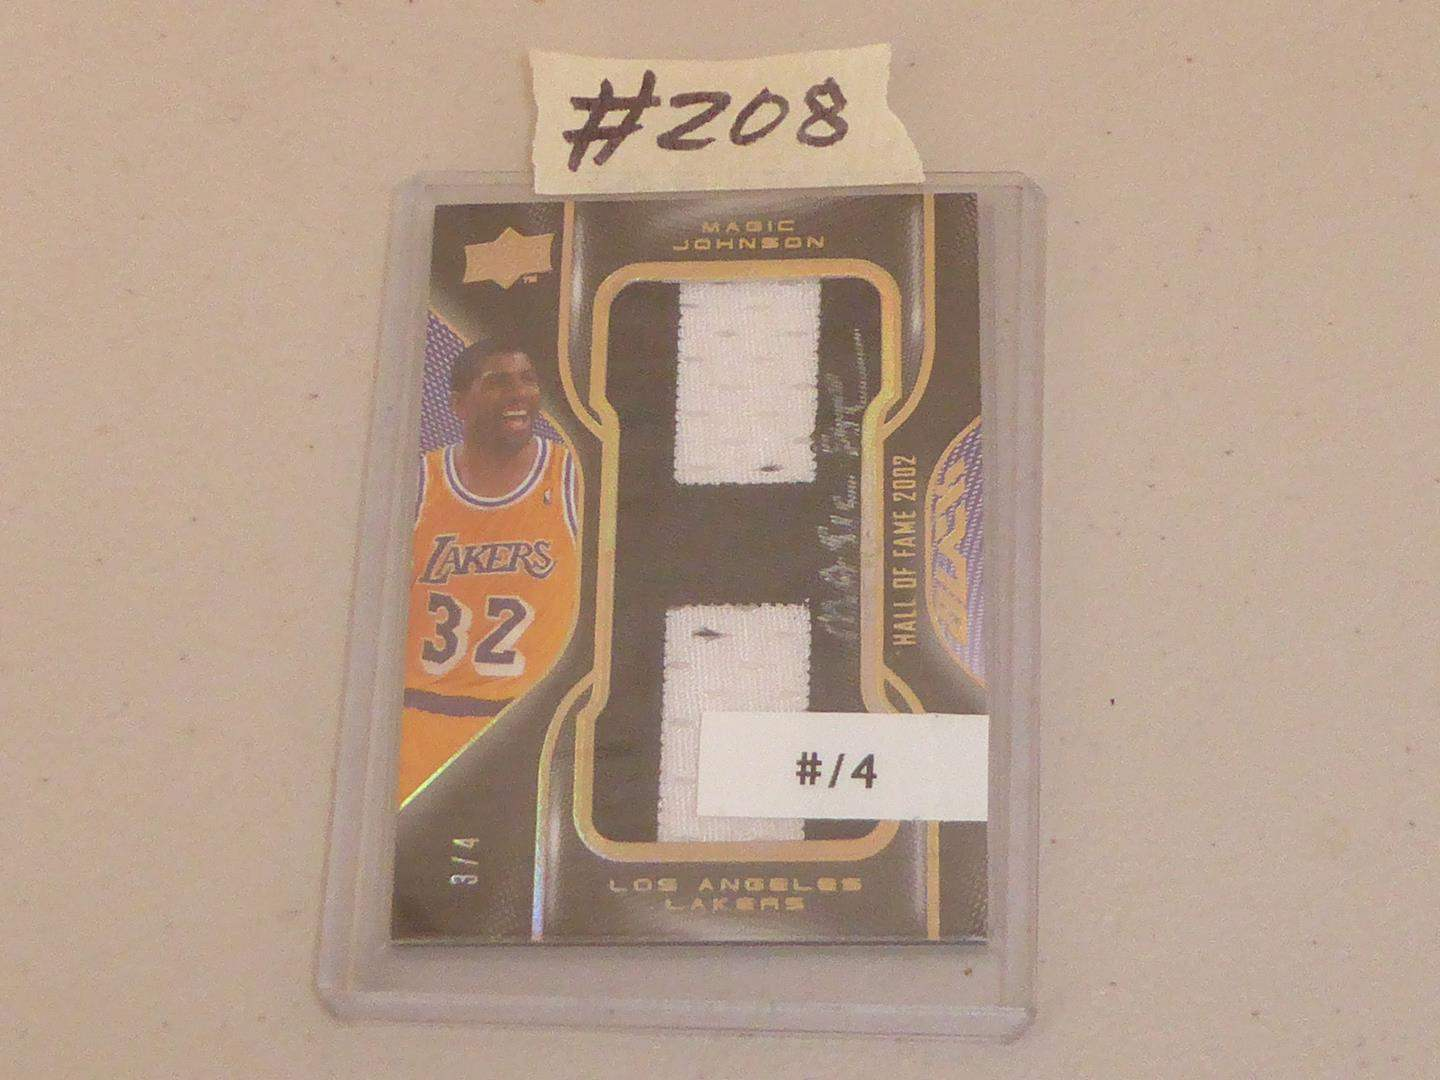 Lot # 208 - Upper Deck 2009 Magic Johnson Autographed Patch Card (main image)